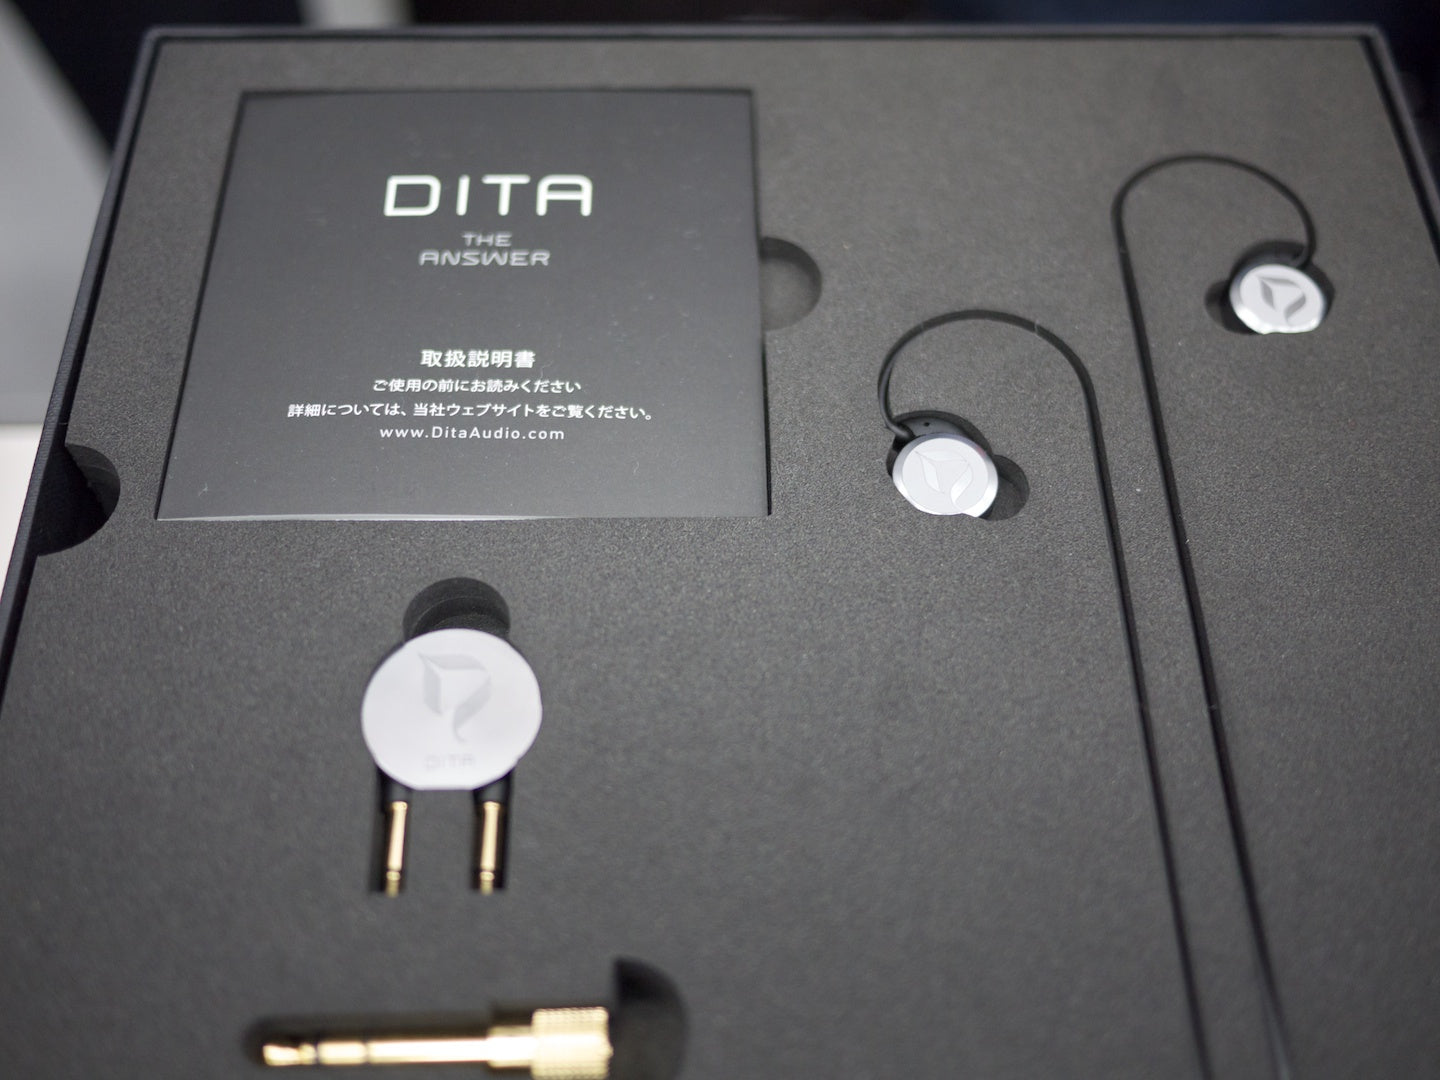 Dita Earphones